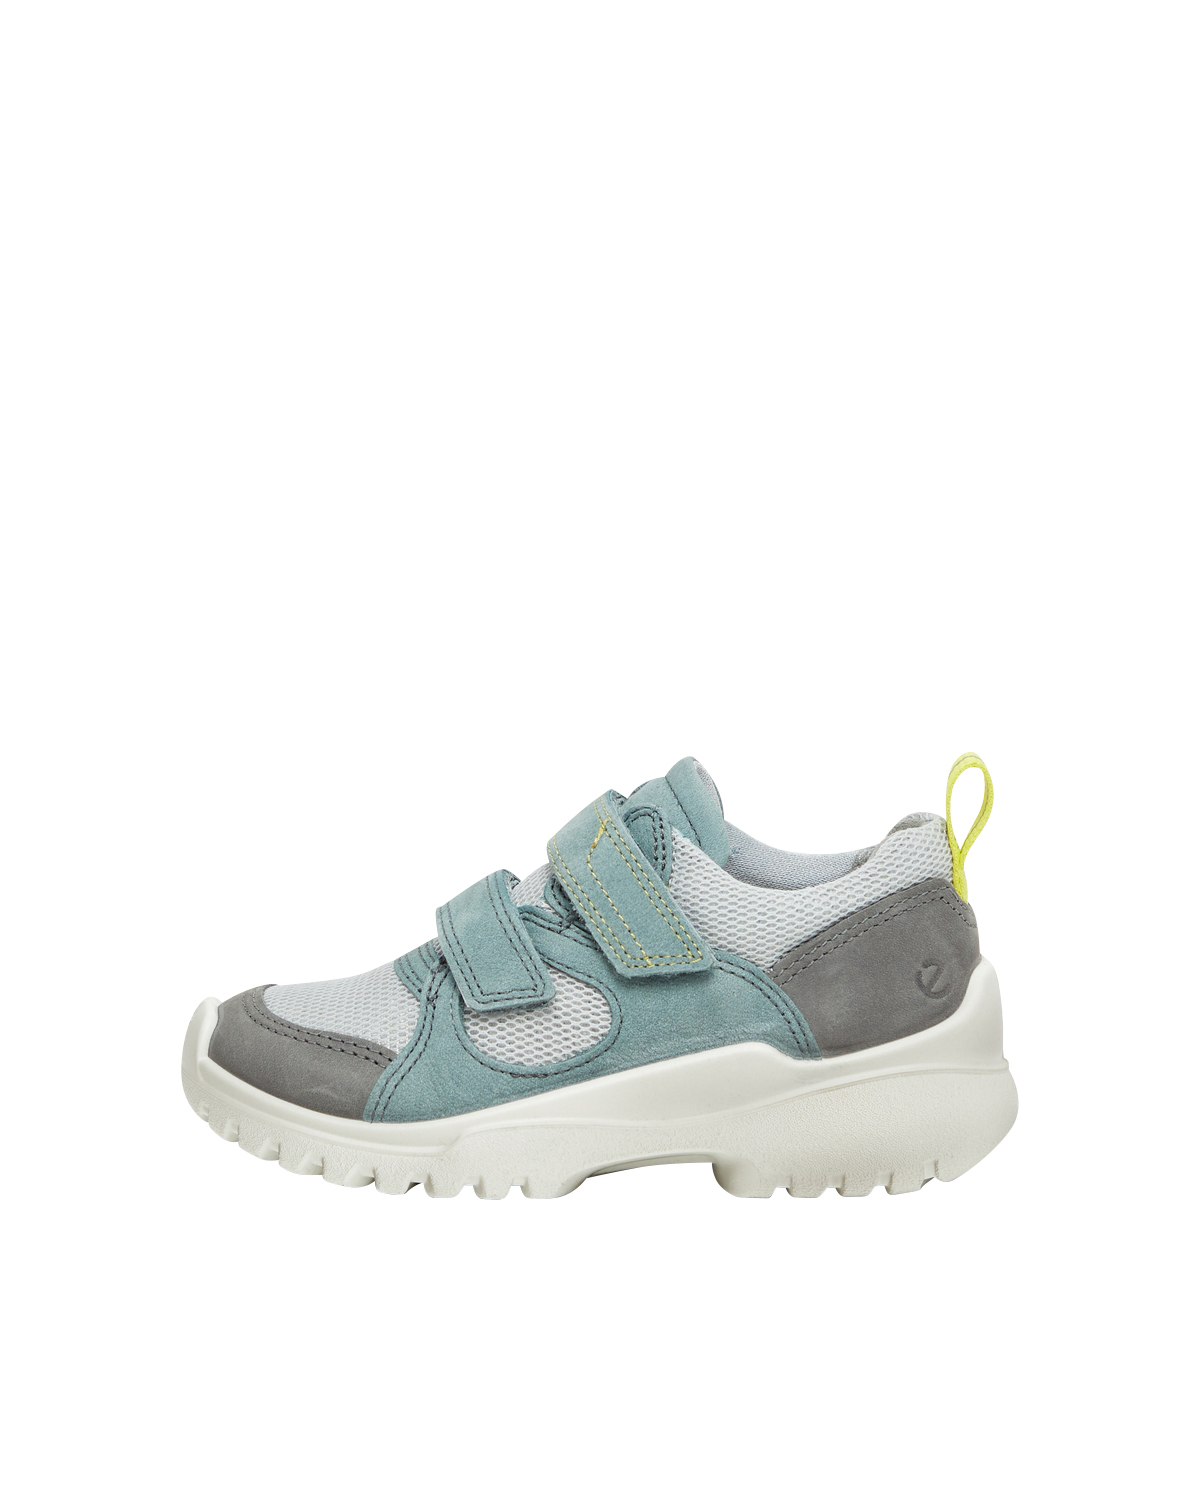 ECCO Xperfection sneakers